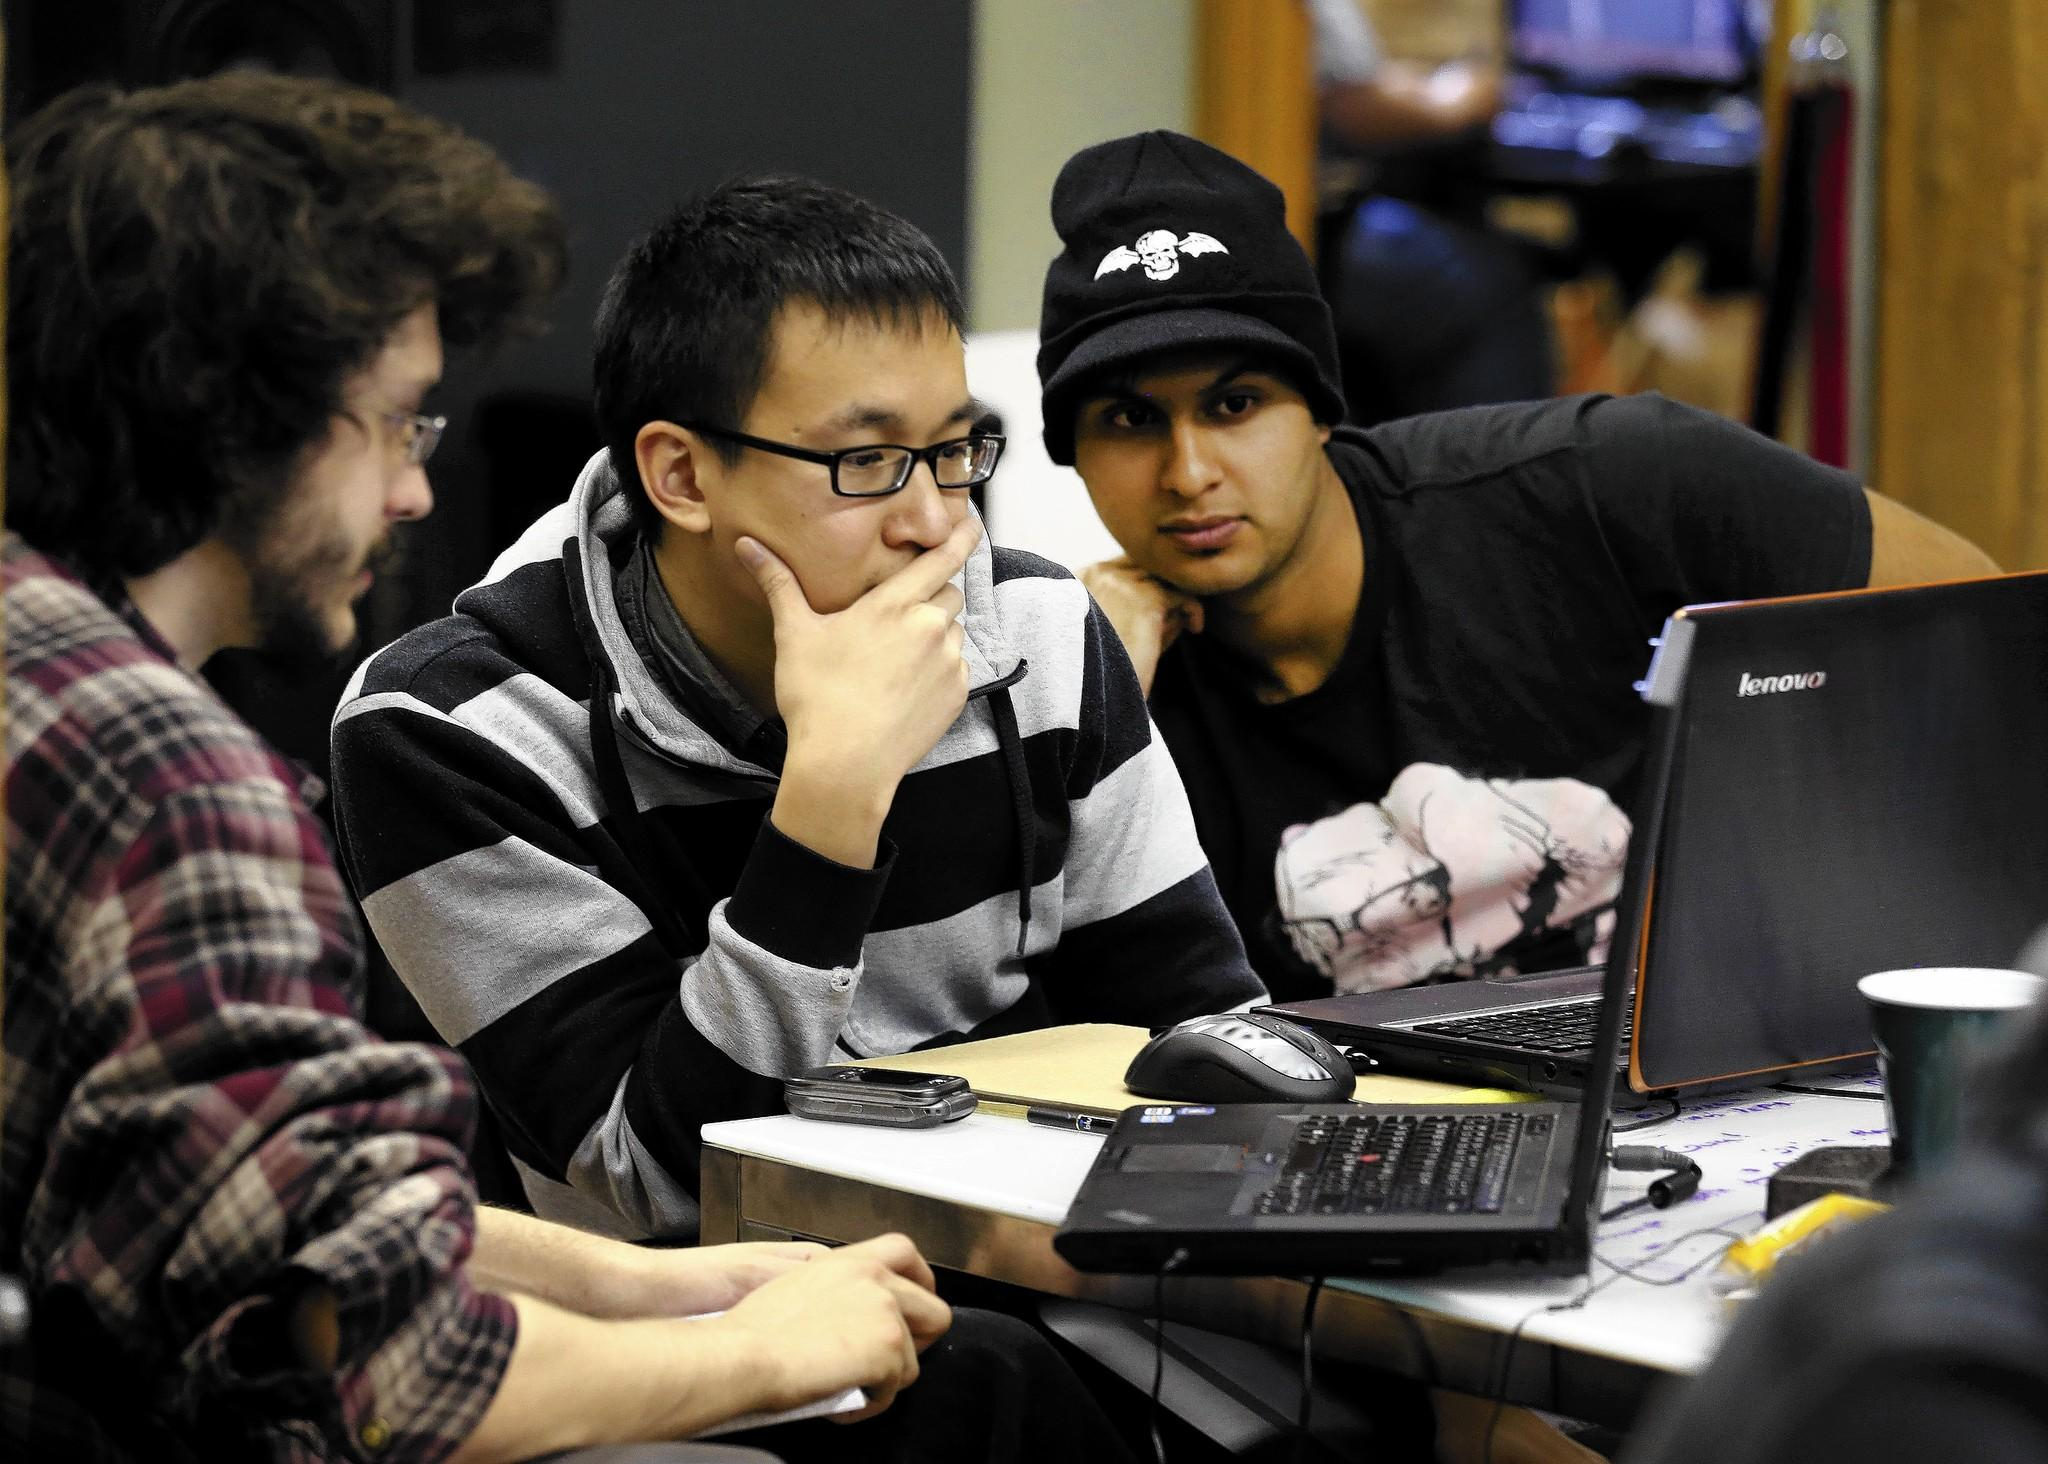 Zach Cassity, from left, John Pantaleon and Sahir Irfan participate in a game jam at The Nerdery in Chicago in October.